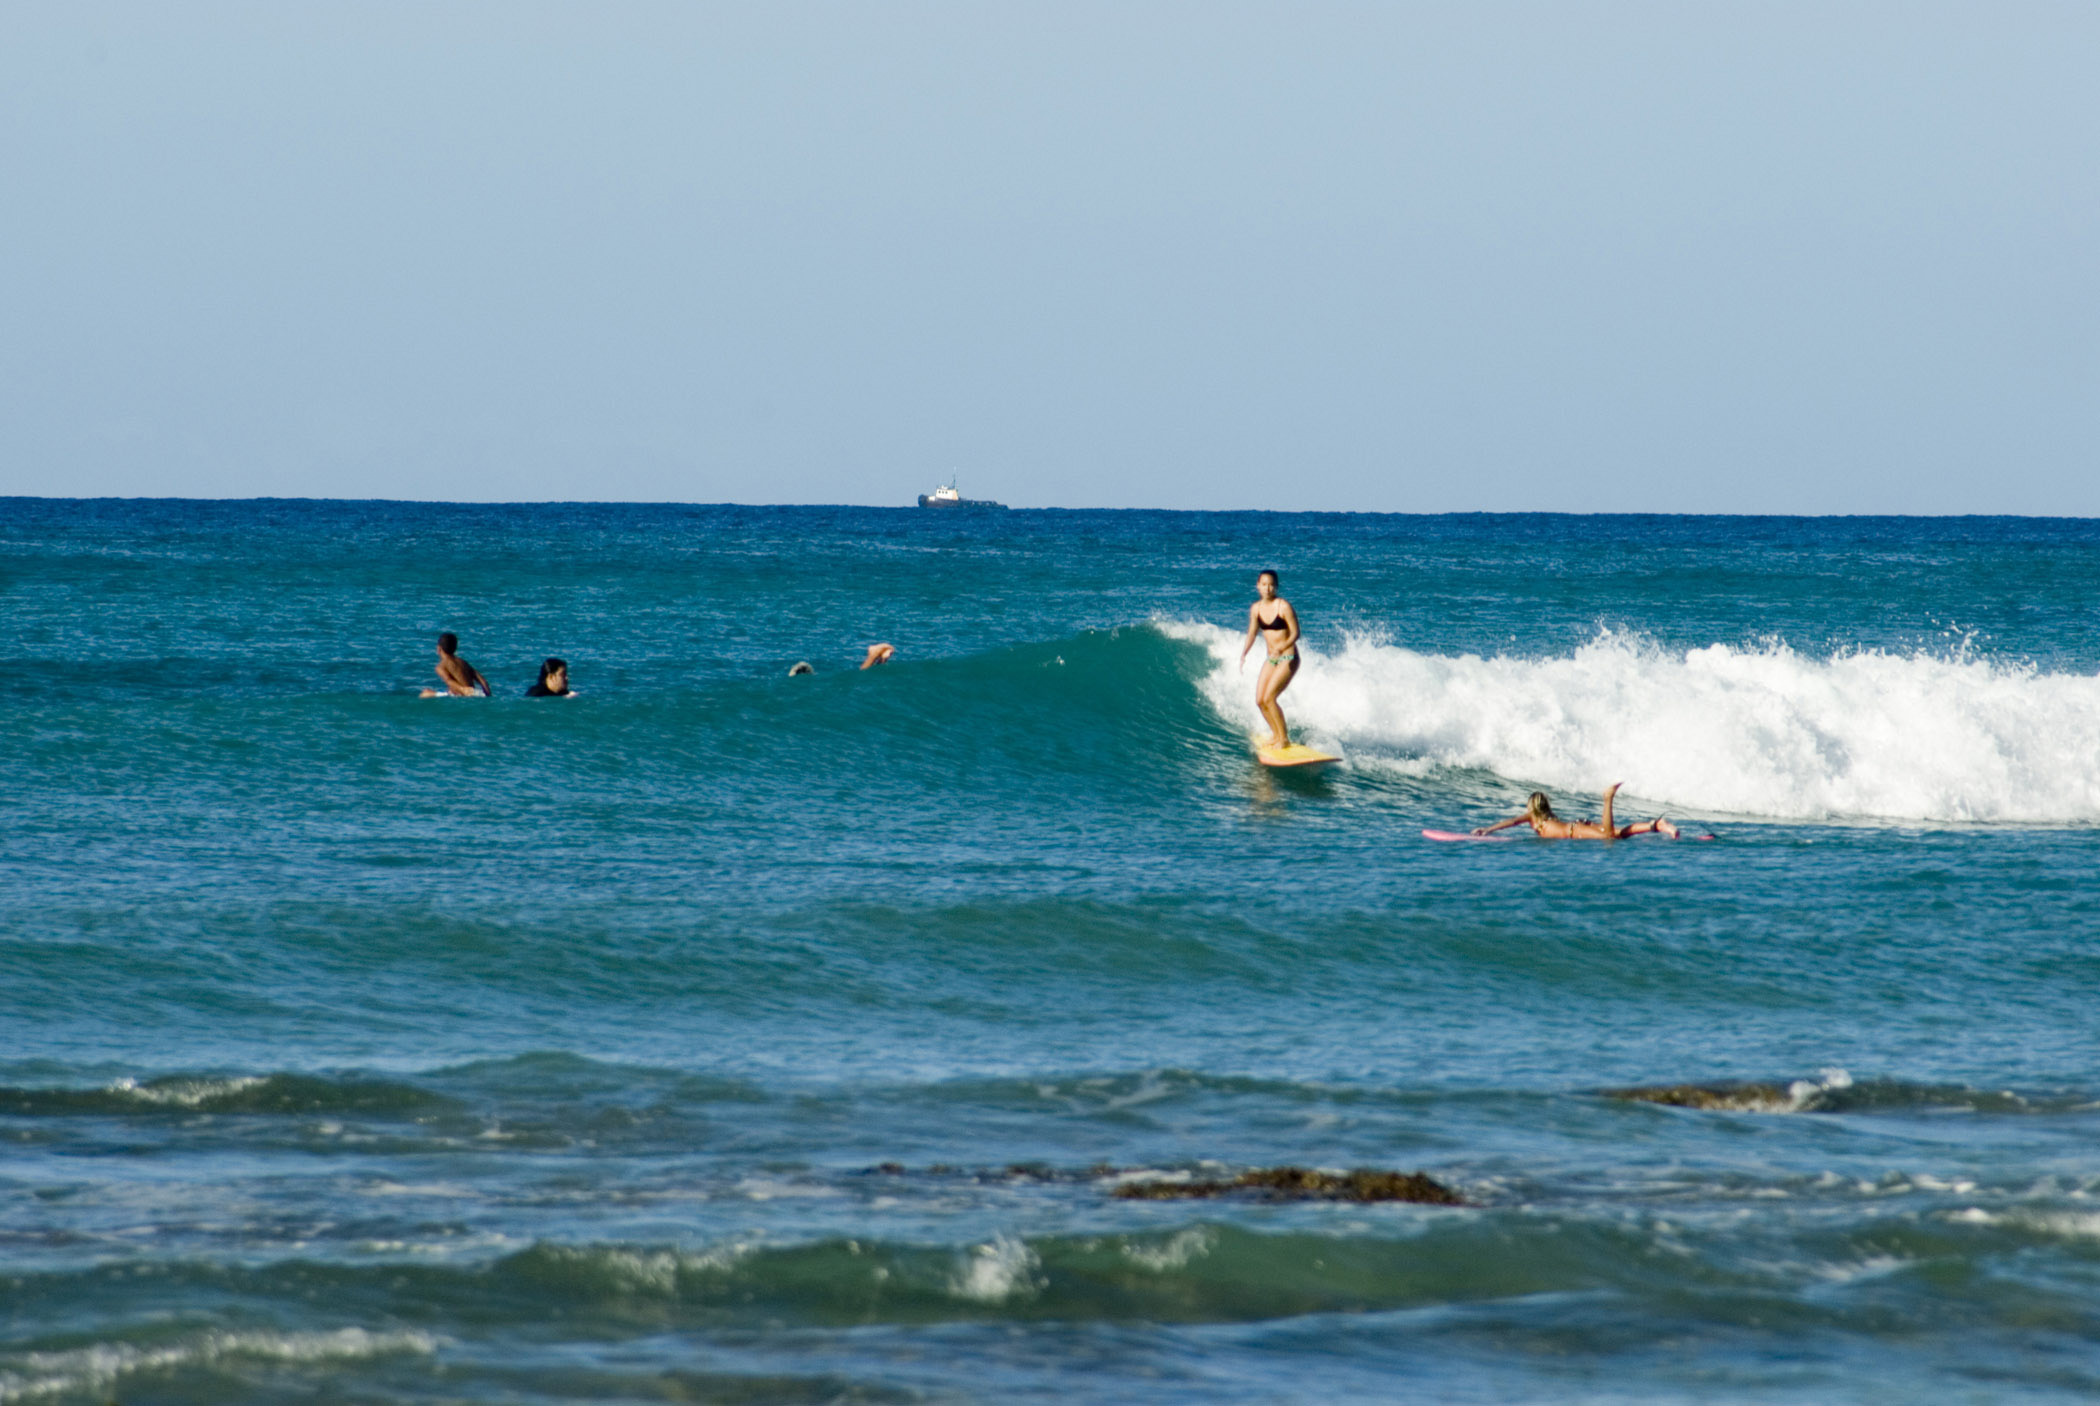 Woman surfing on Waikiki Beach riding in on a wave with other surfers paddling around her, Oahu Island, Hawaii, USA